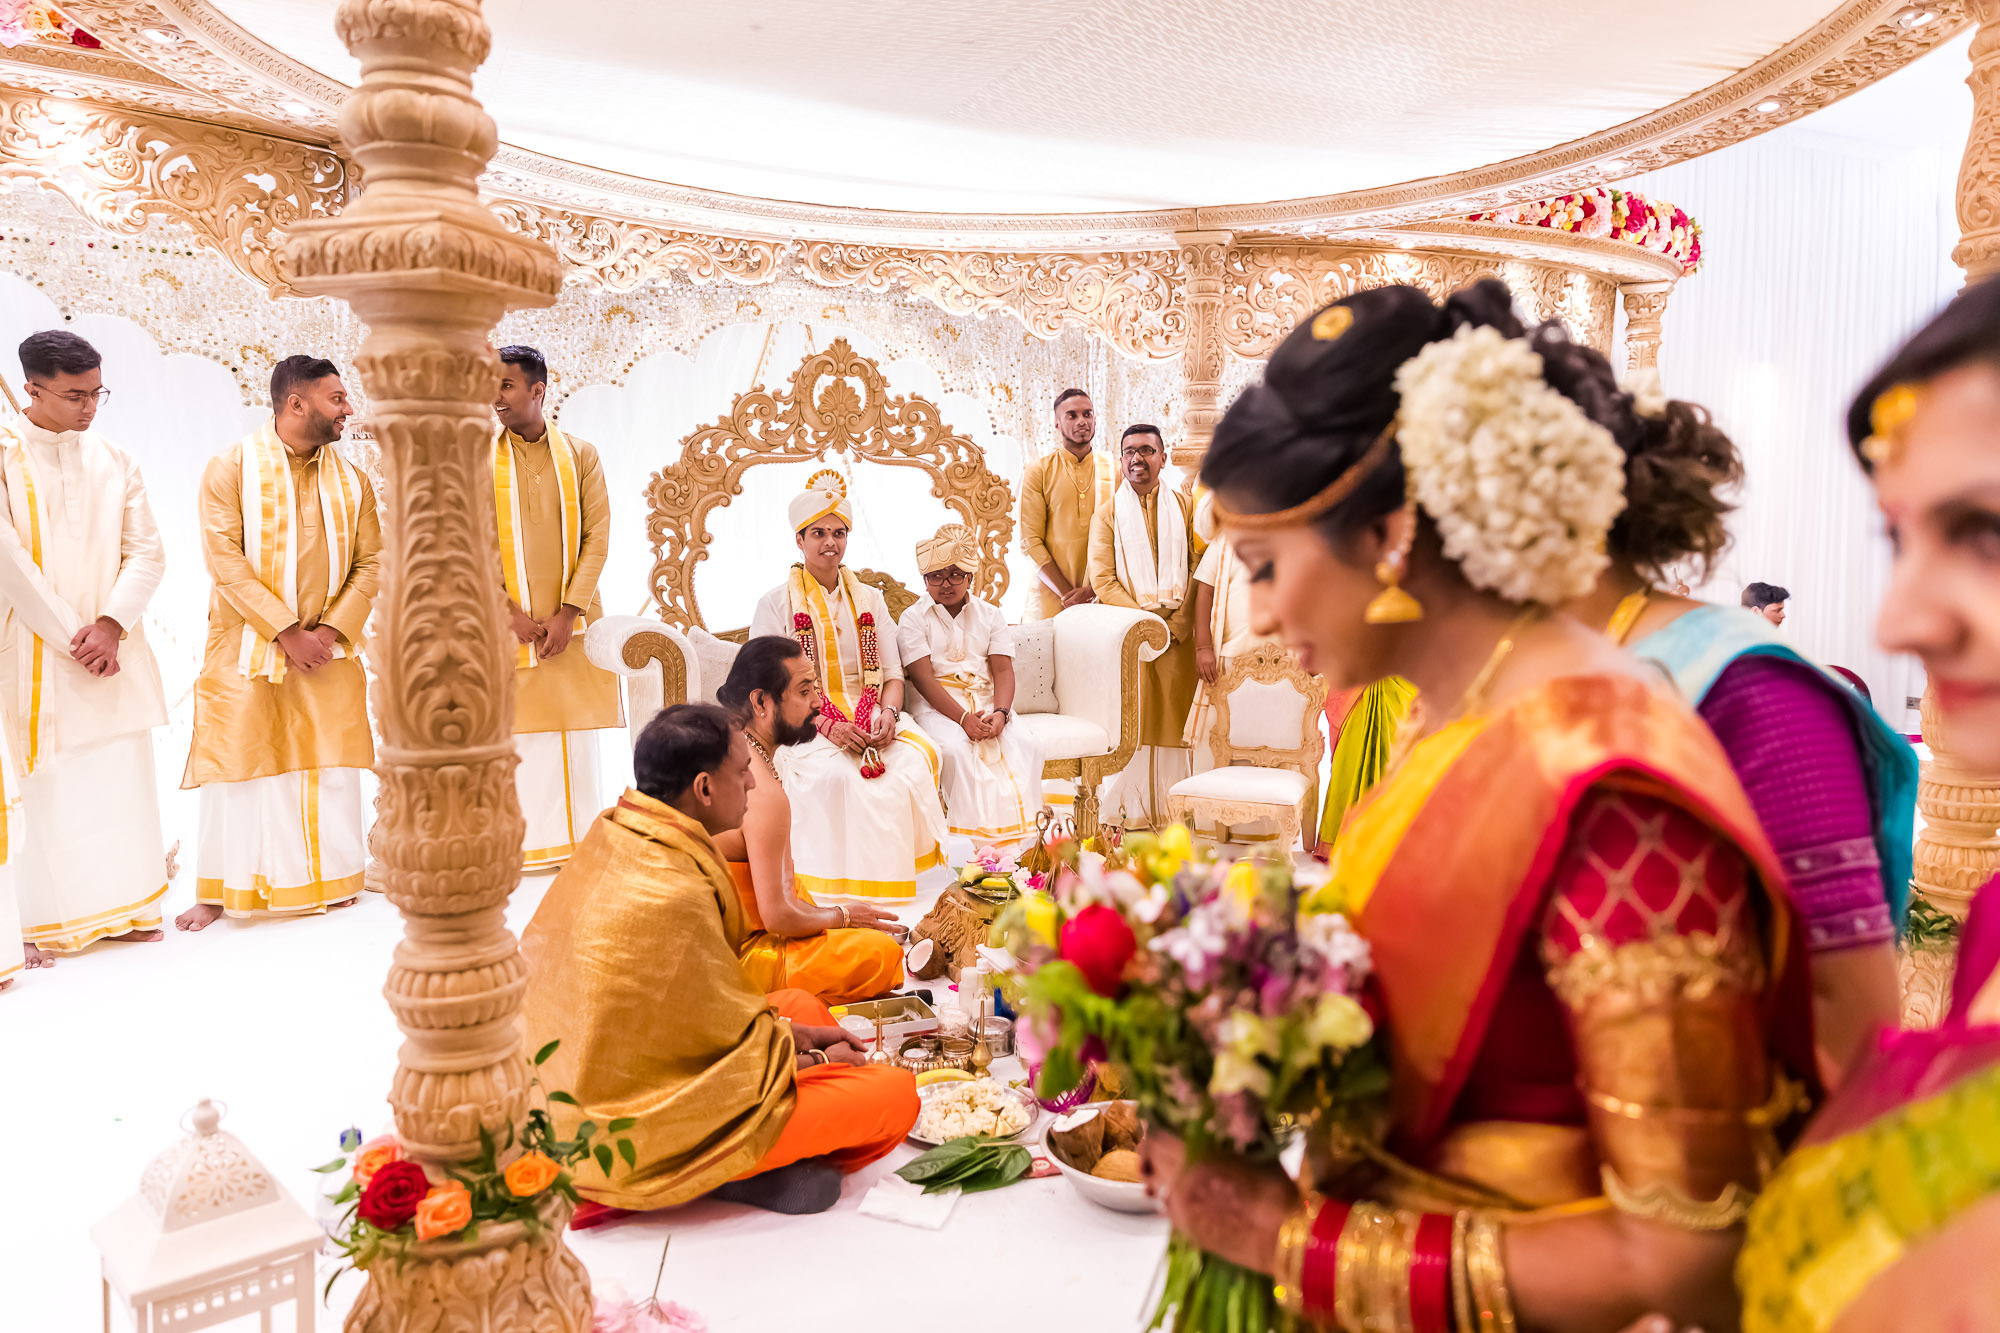 asian-wedding-hindu-tamil-photographer-heythorpe-oxford-0040.jpg